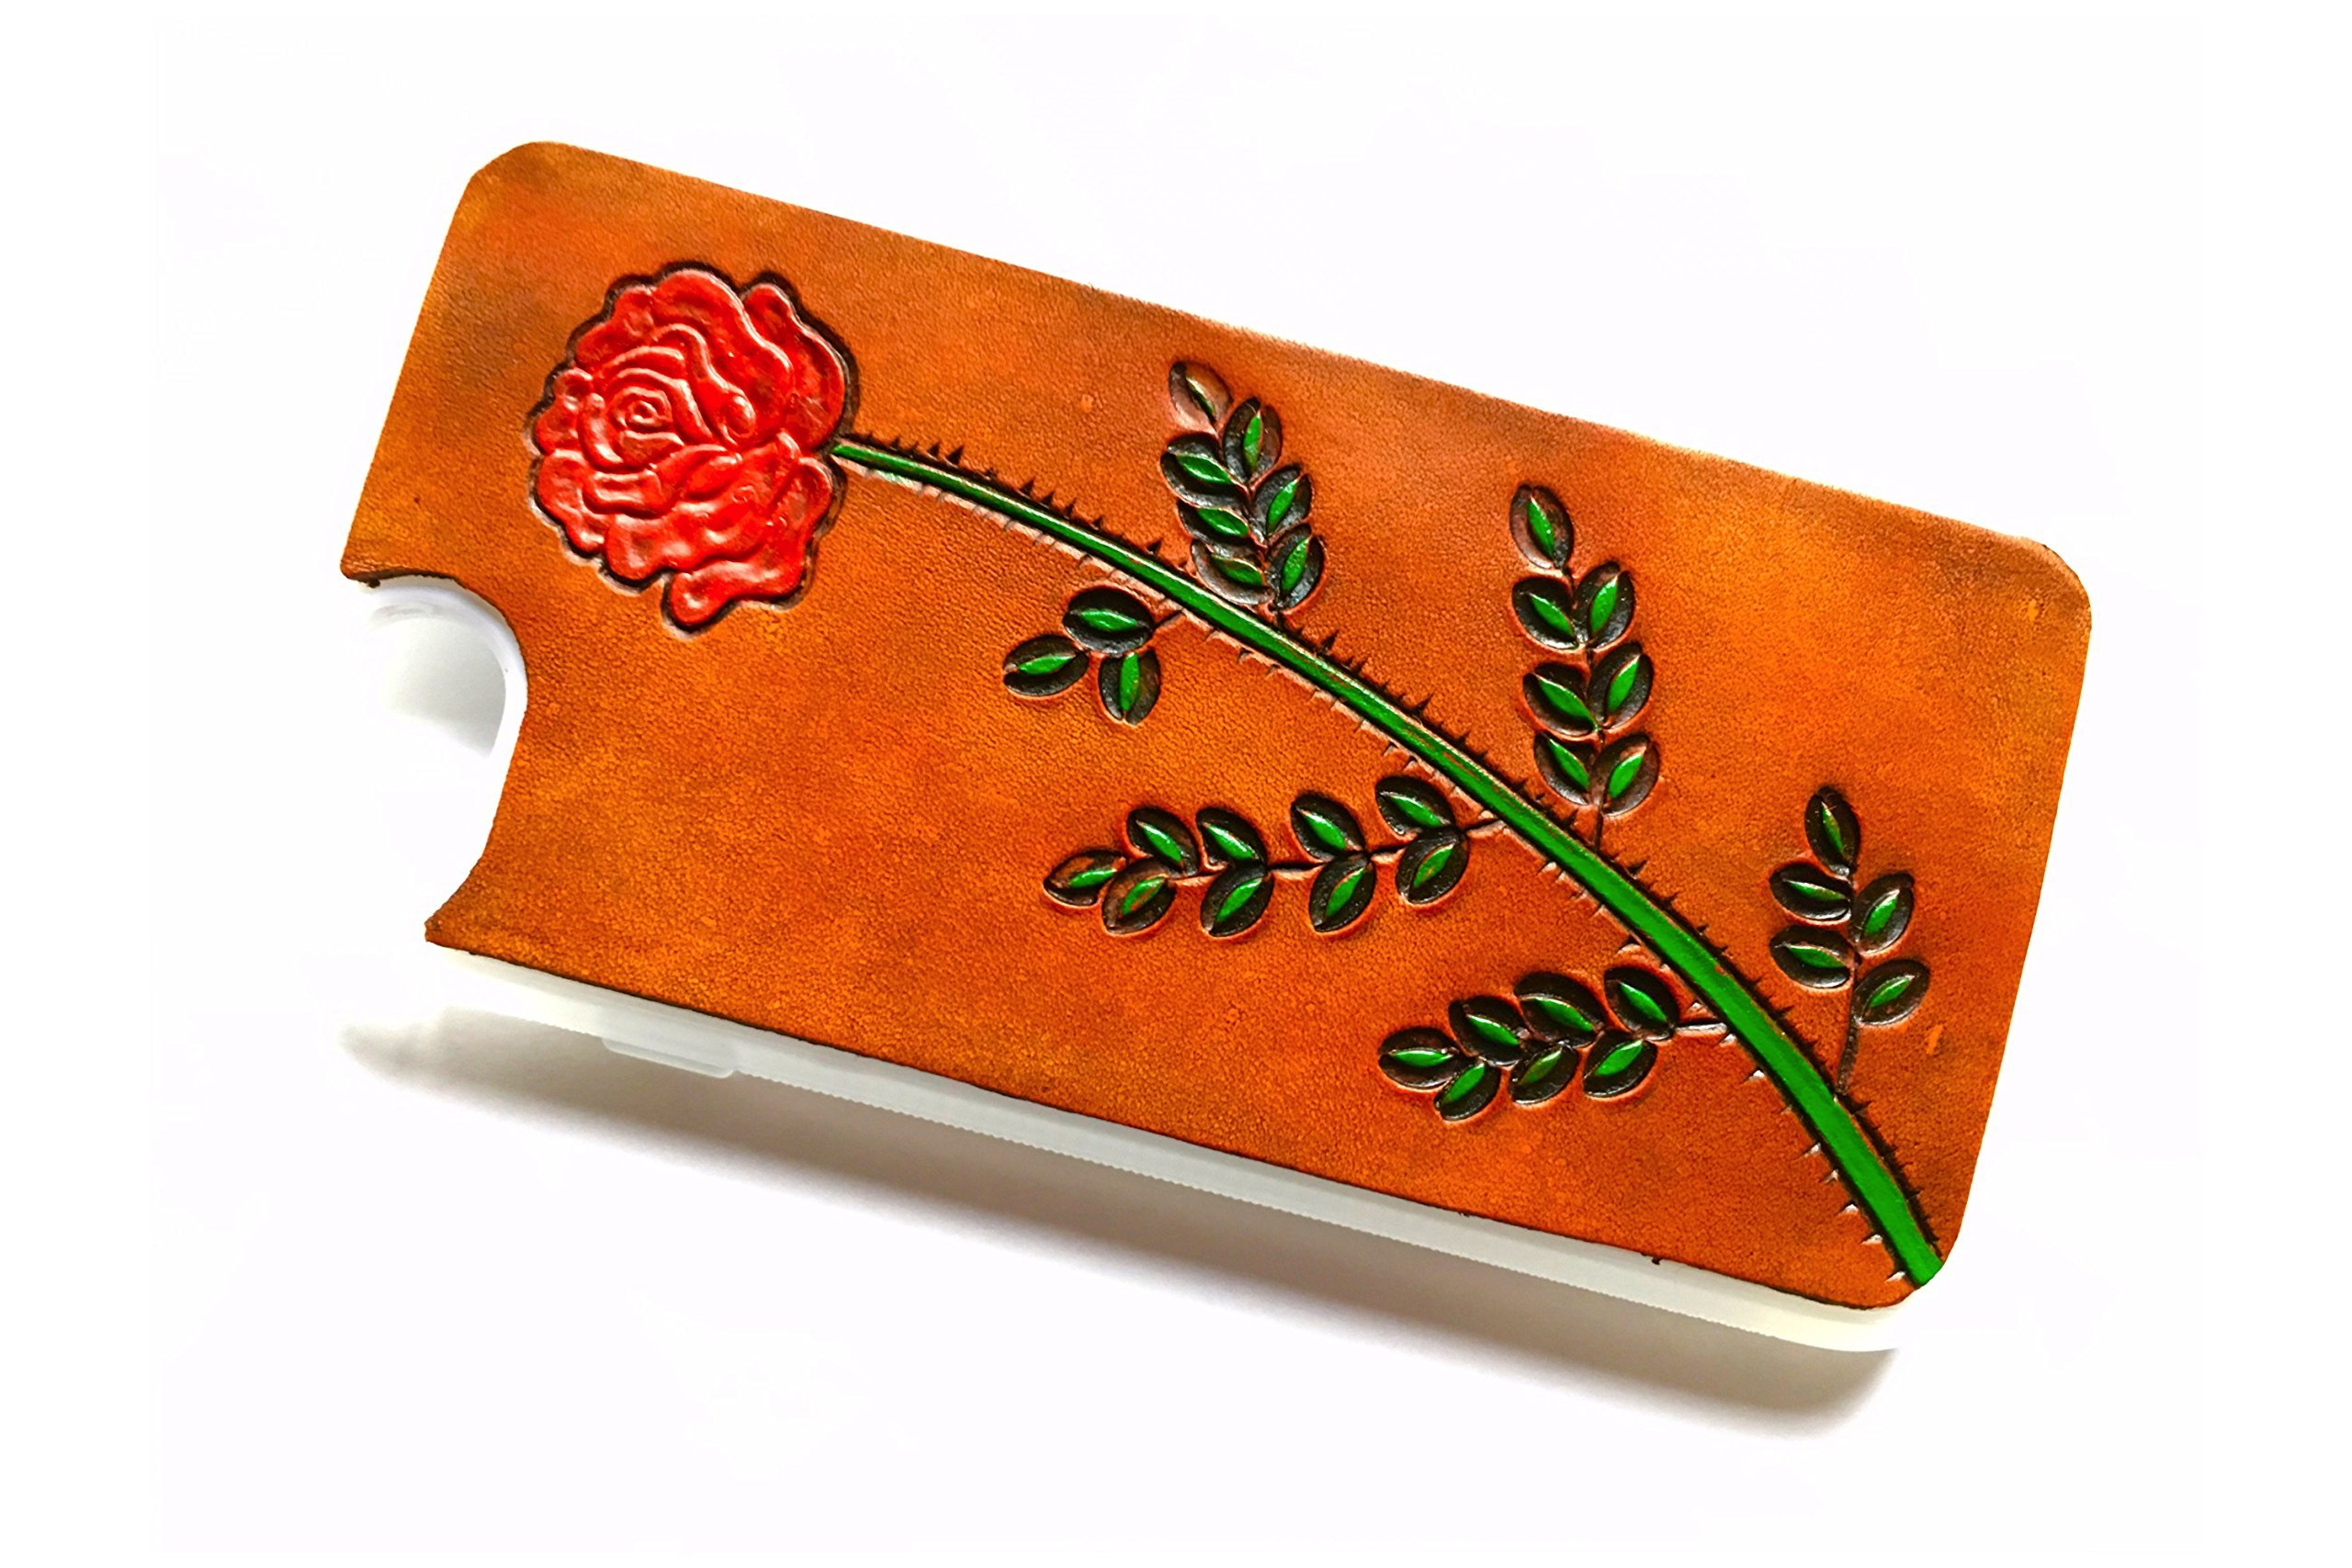 Leather iPhone 7 Case   Red Rose   The Lodgepole Case   Tan Handmade Hard Back Slim Fit Silicone Edges Protective Cowhide Leather iPhone Case 4.7'' iPhone Cover by Lodgepole Leathercraft